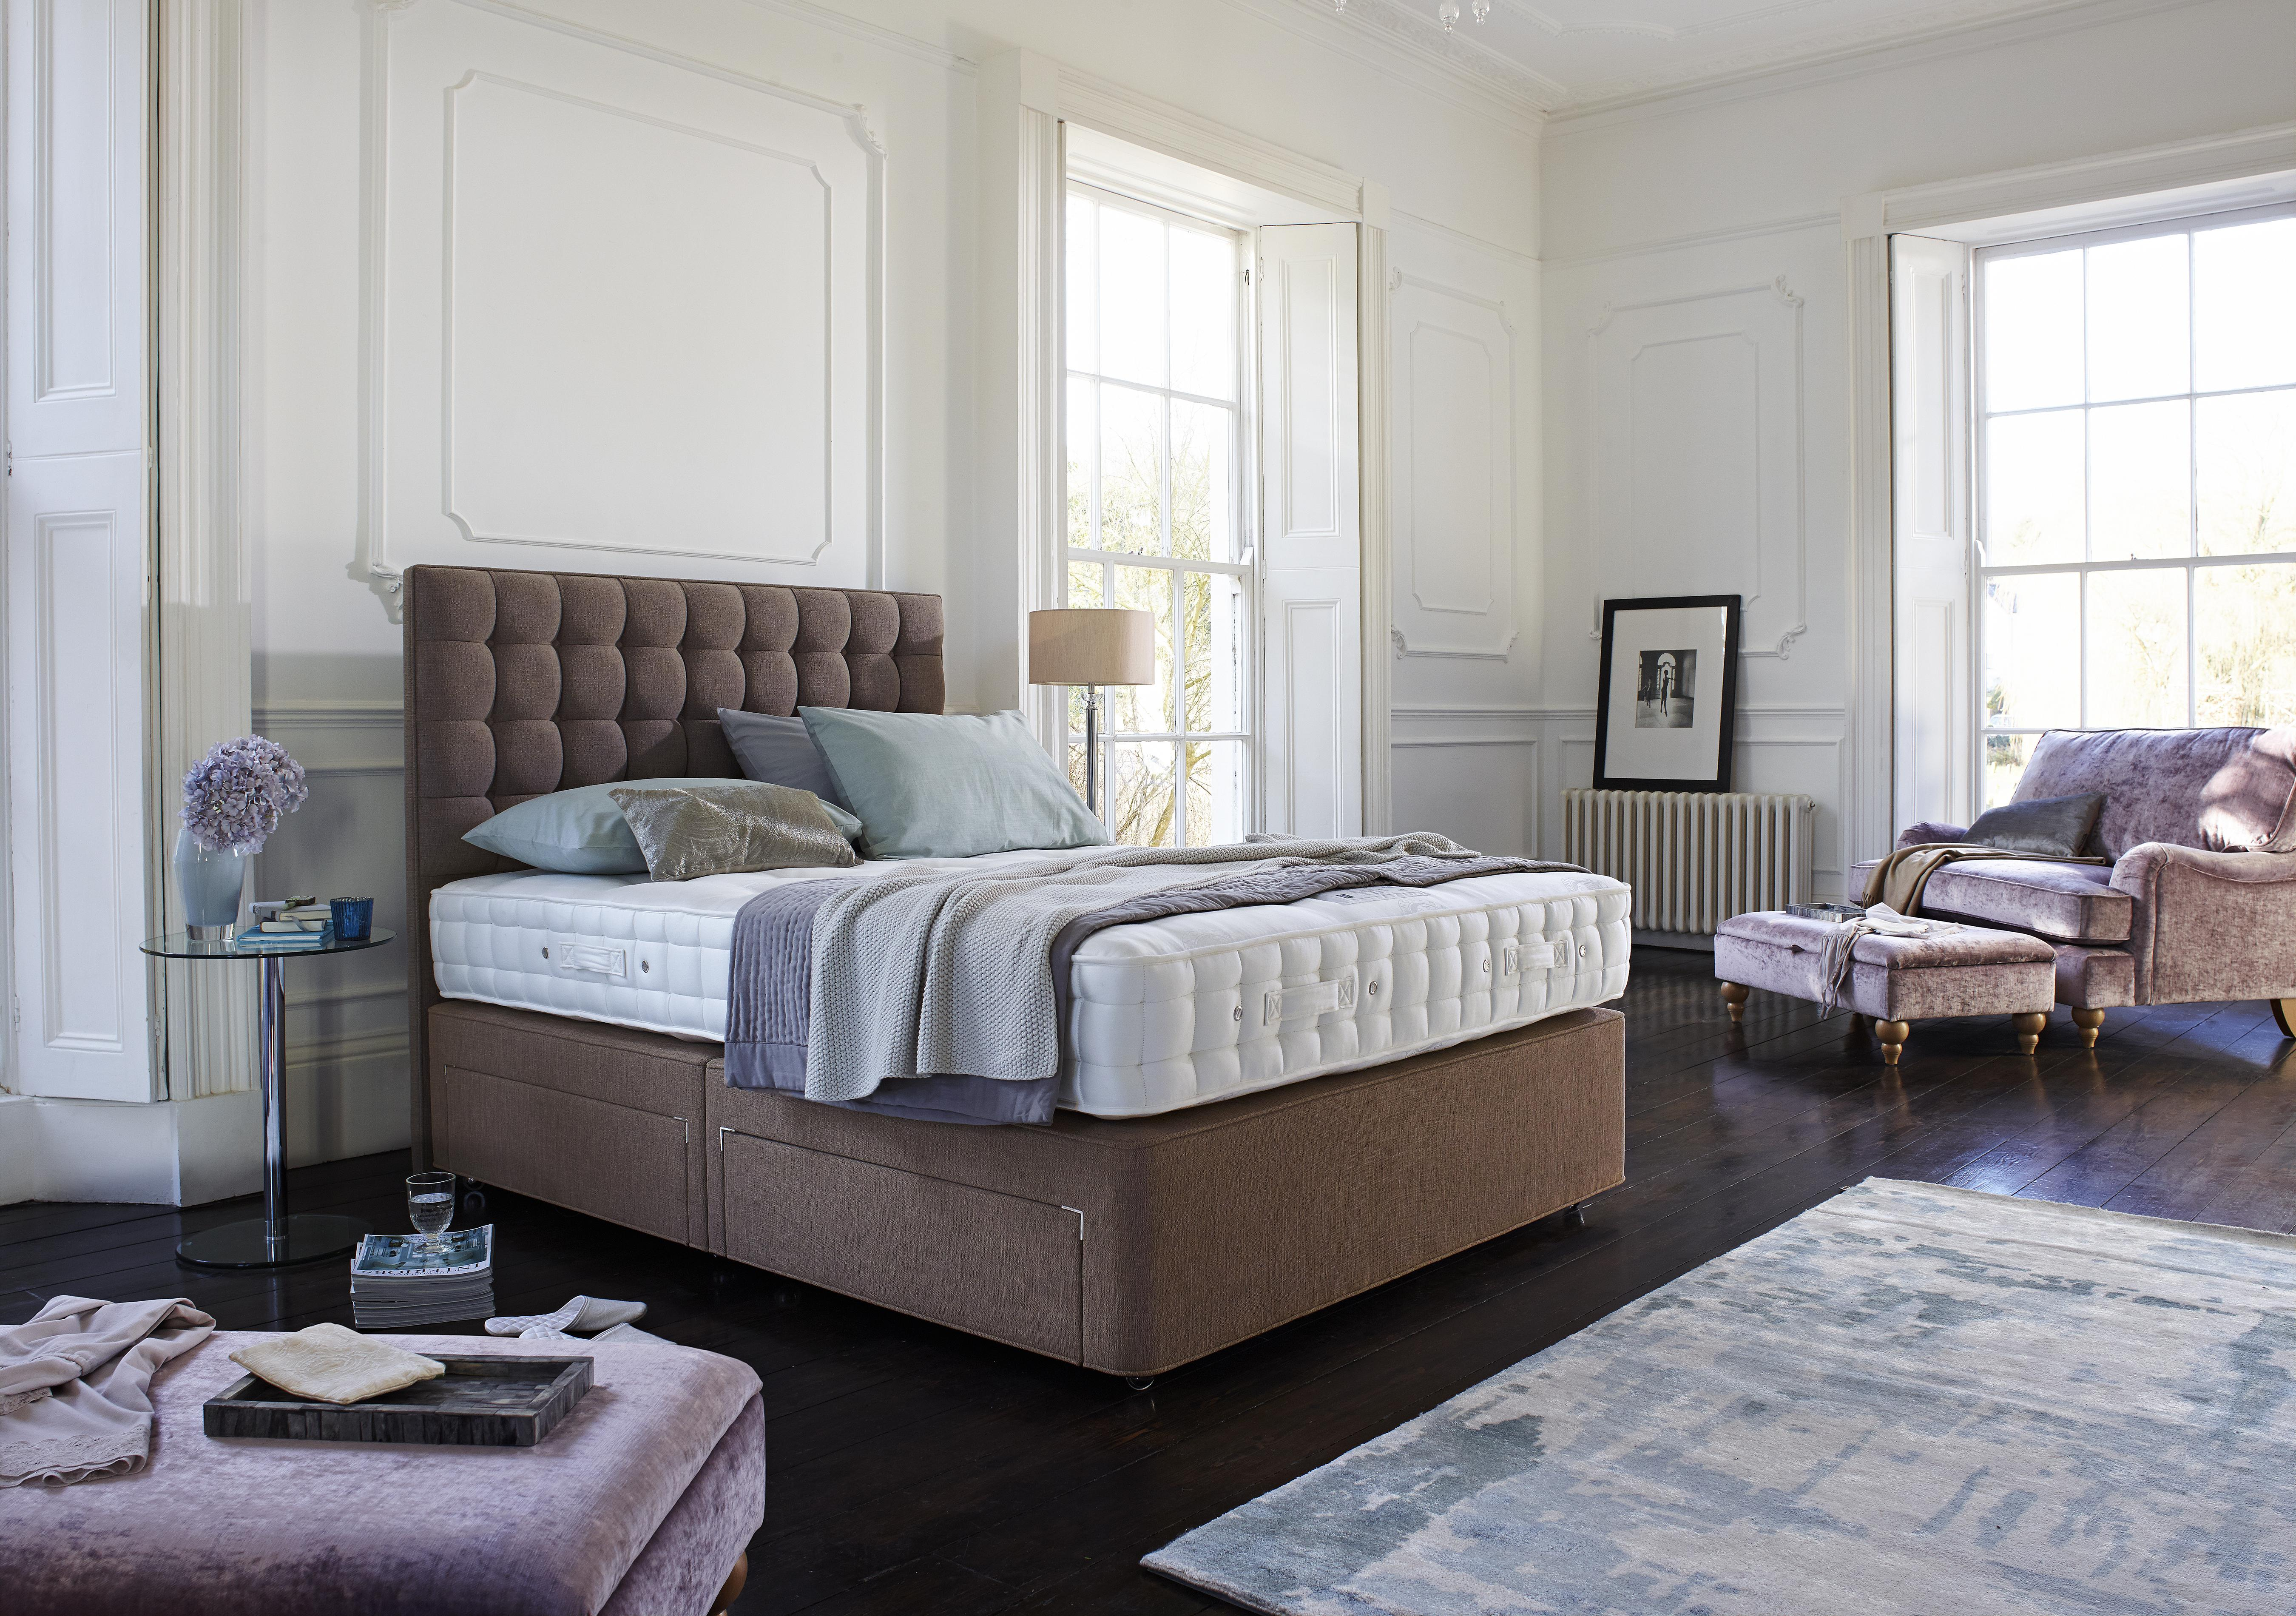 Hypnos Revive Luxury Silk Mattress